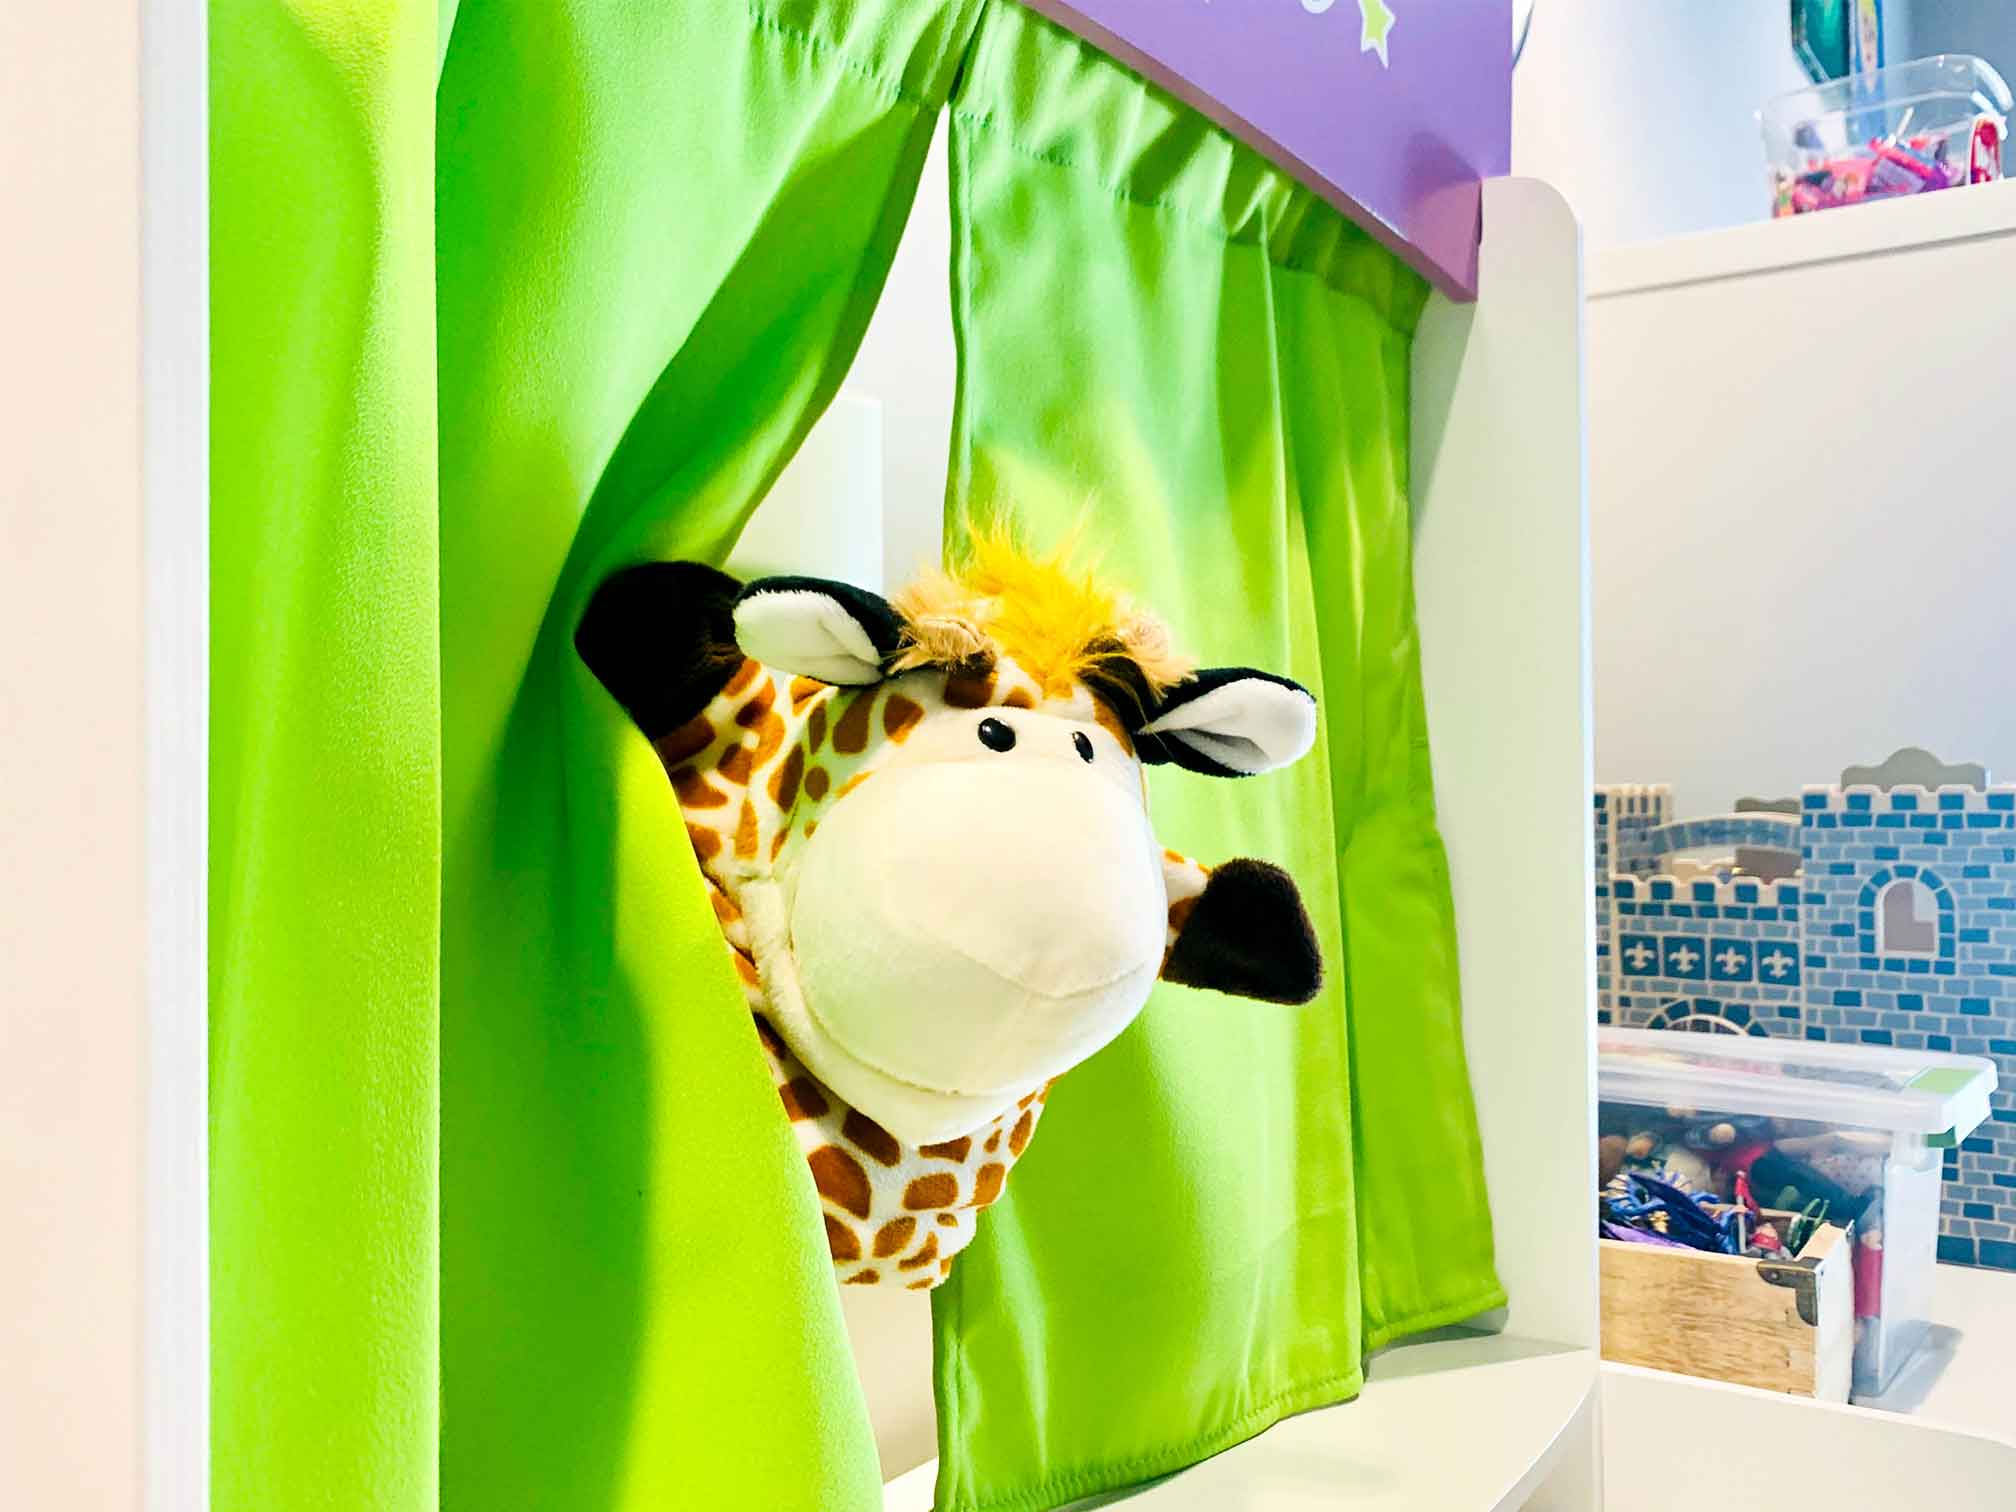 Puppet show with a giraffe poking through green curtains, looking happy in a beautifully decorated playroom for counseling and therapy. Your child can get help in play therapy in Ohio and Indiana for child counseling with ThrivePointe child therapists